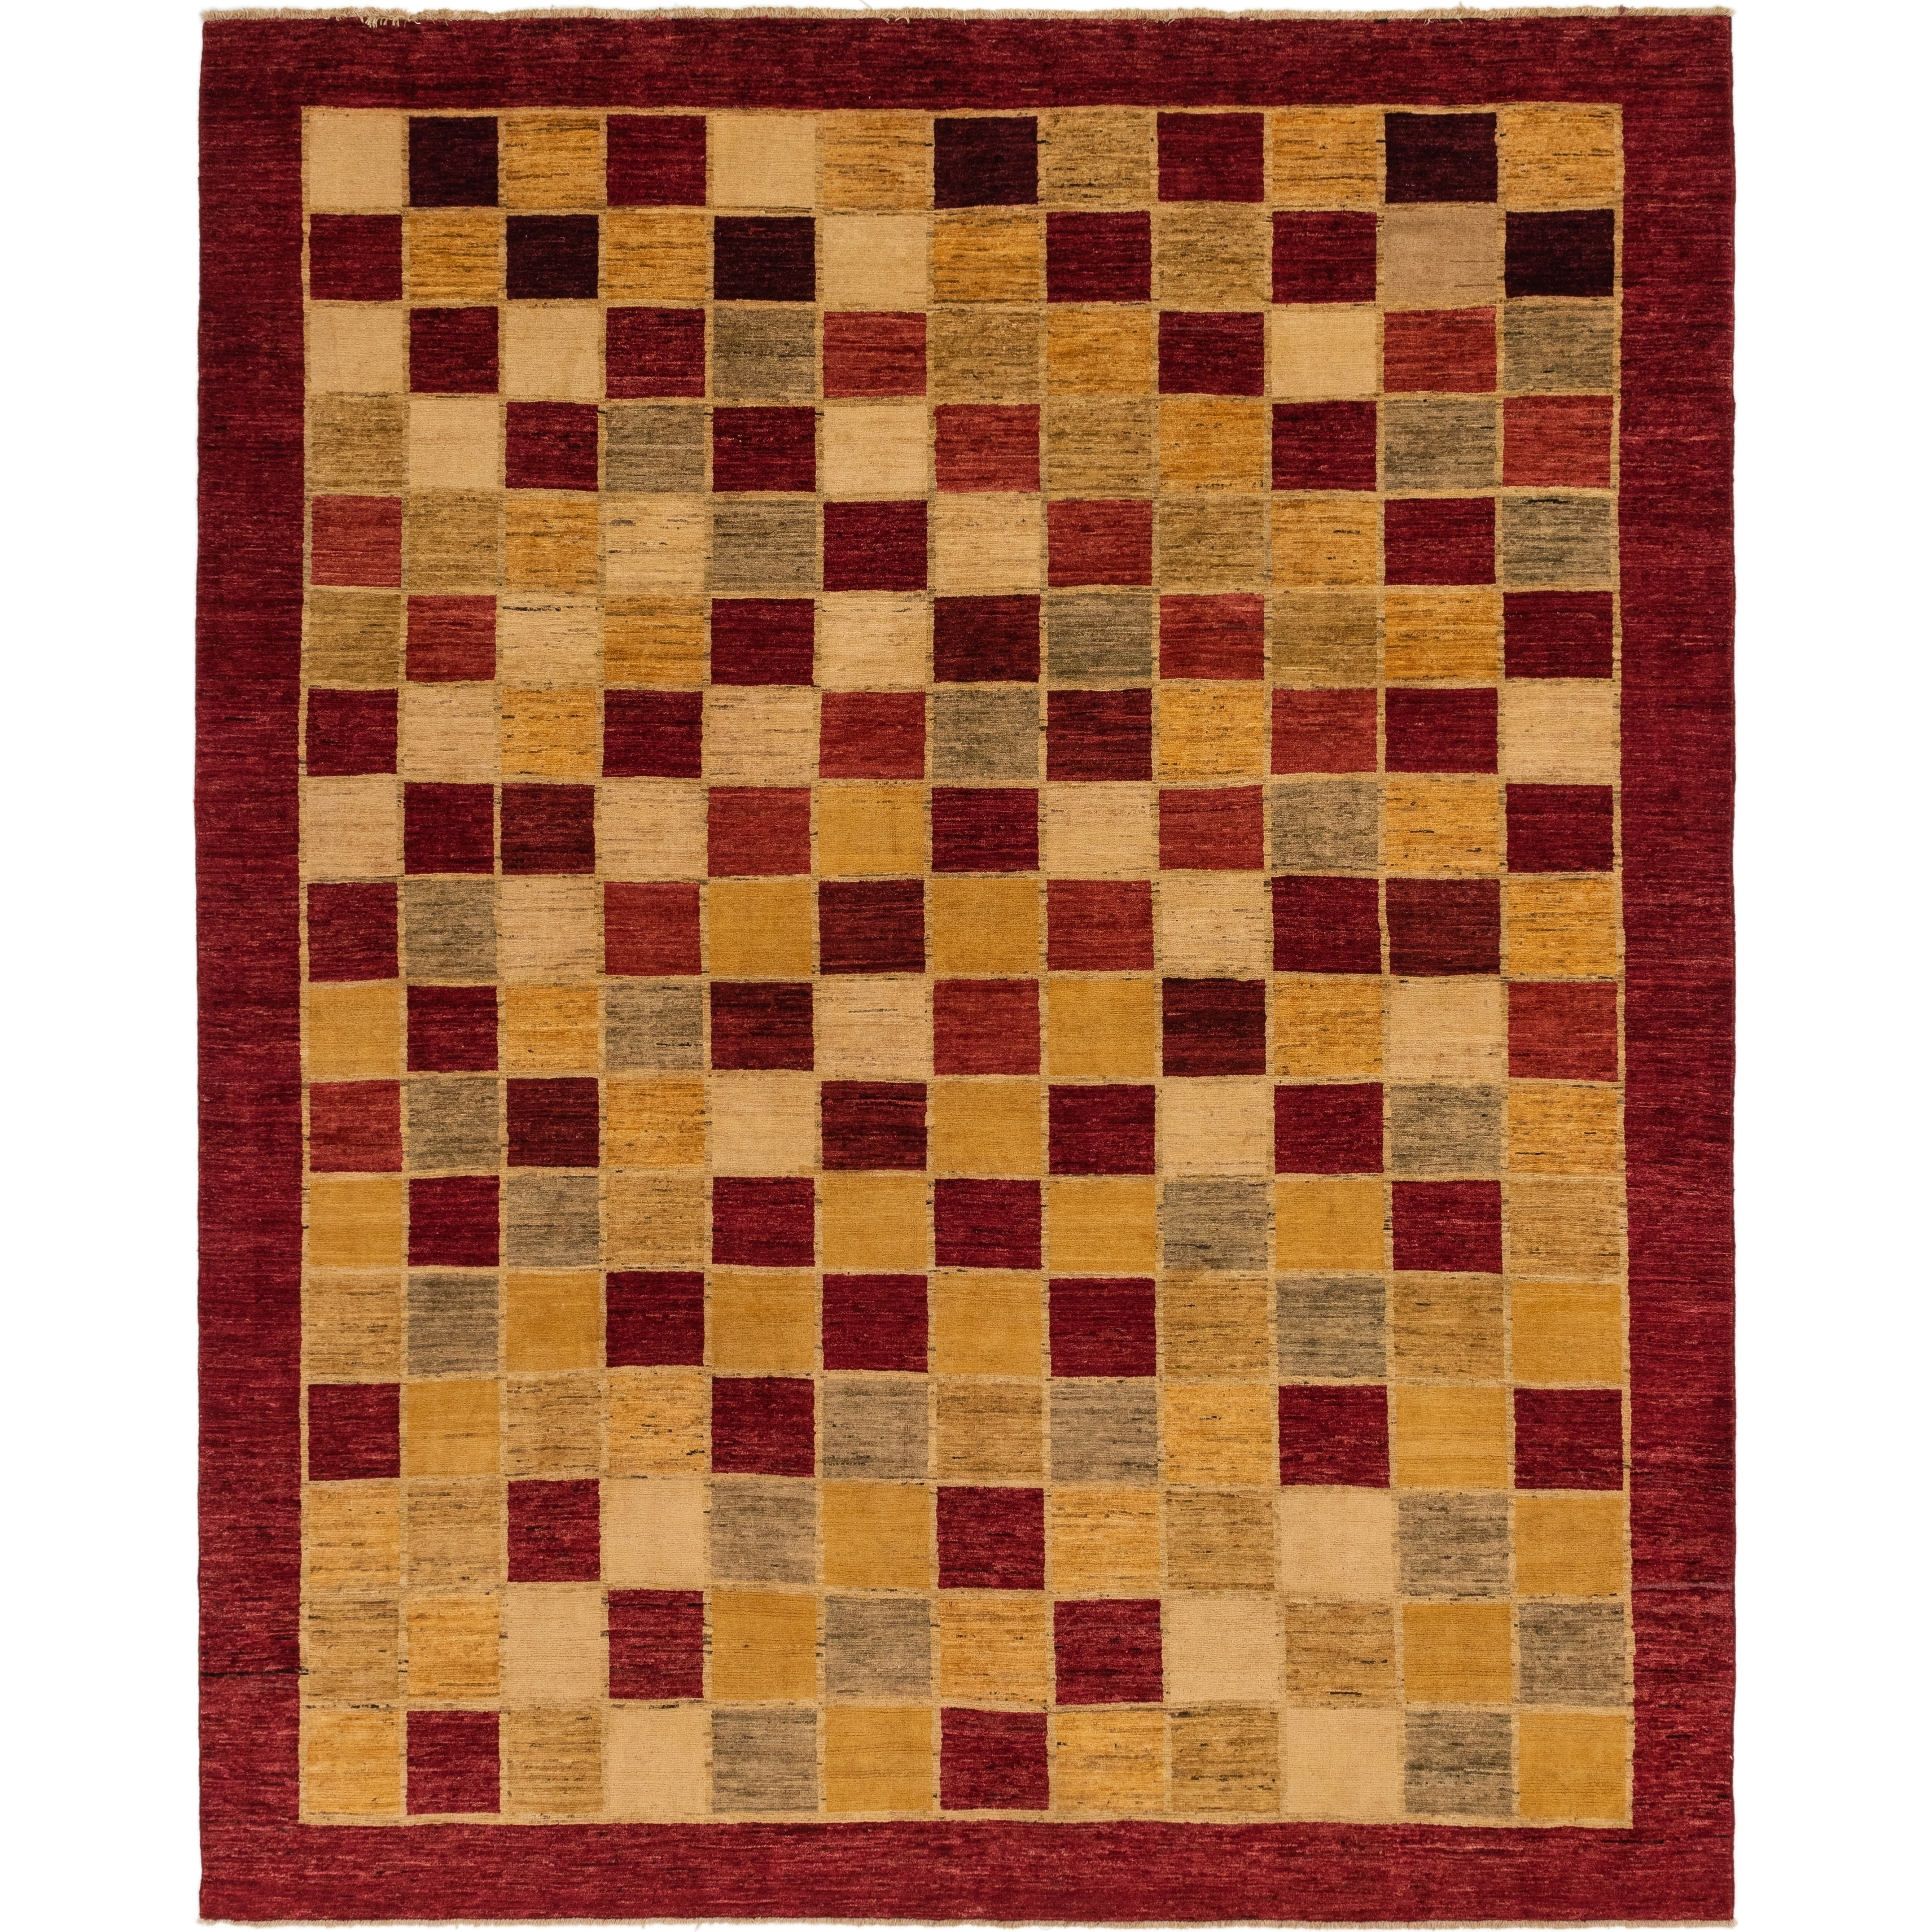 Hand Knotted Kashkuli Gabbeh Wool Area Rug - 10 5 x 12 9 (Red - 10 5 x 12 9)